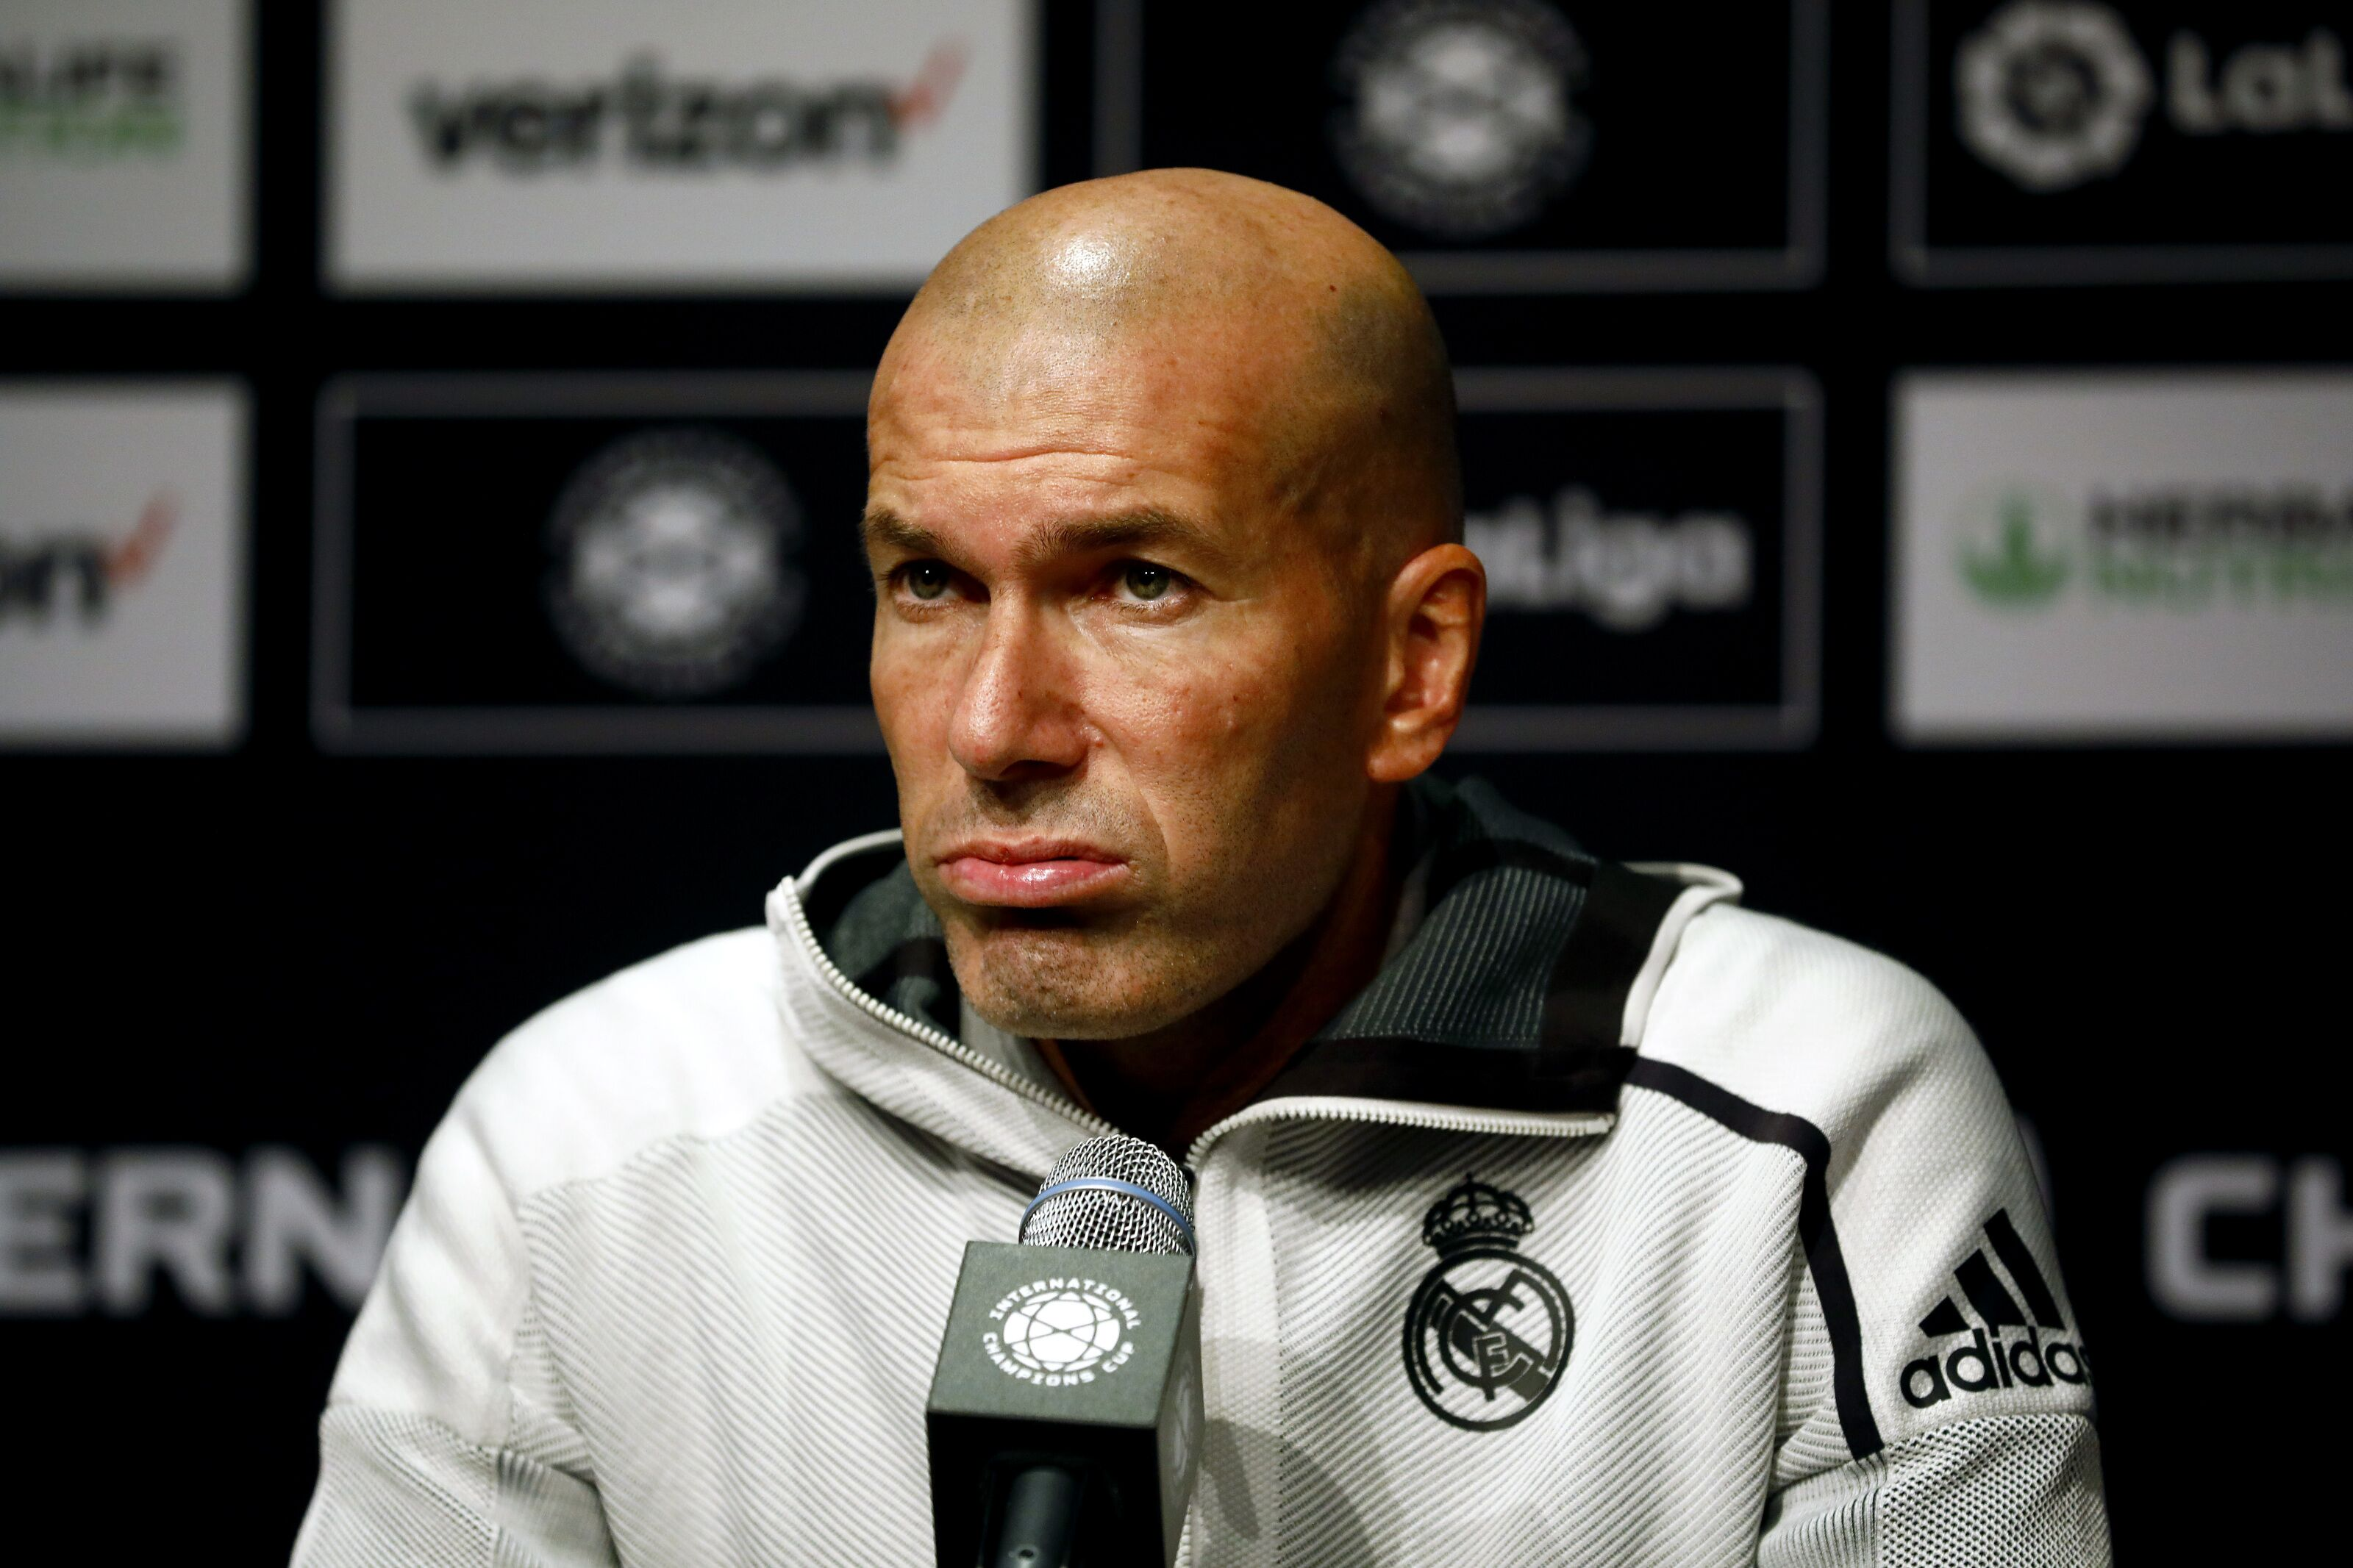 David Beckham wants Zinedine Zidane as his coach, but that's a pipe dream